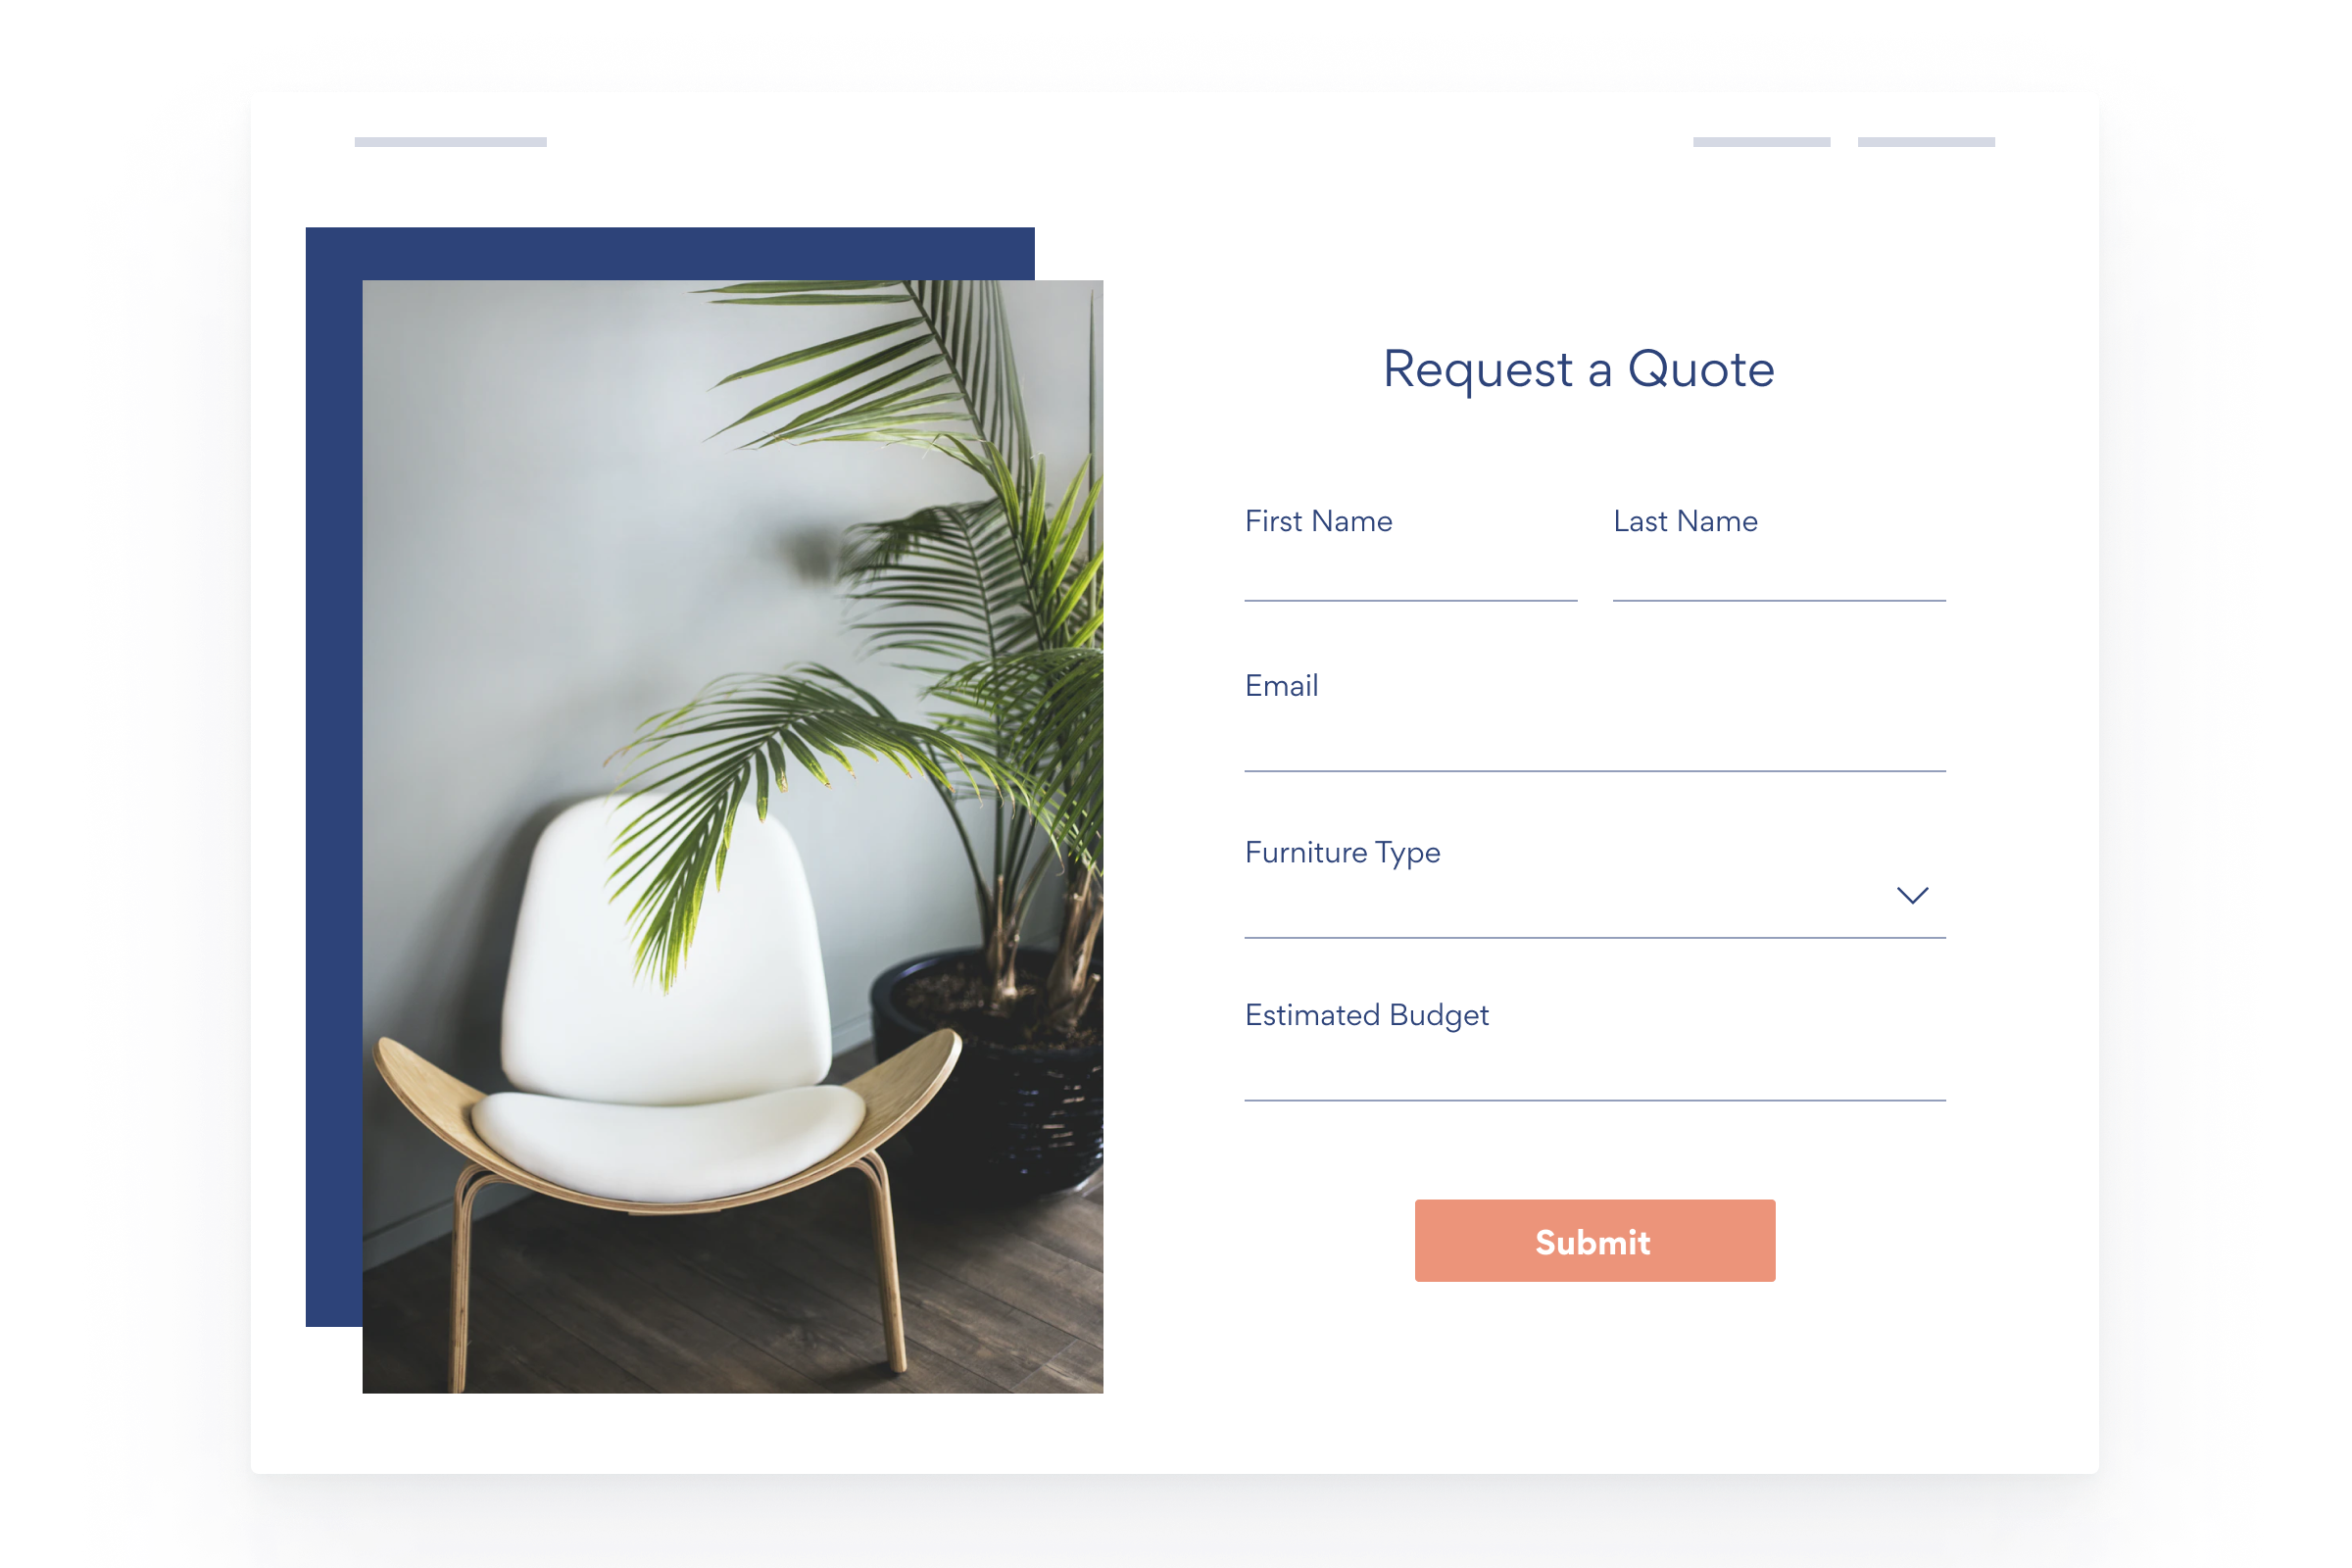 website-mock-quote-request-form